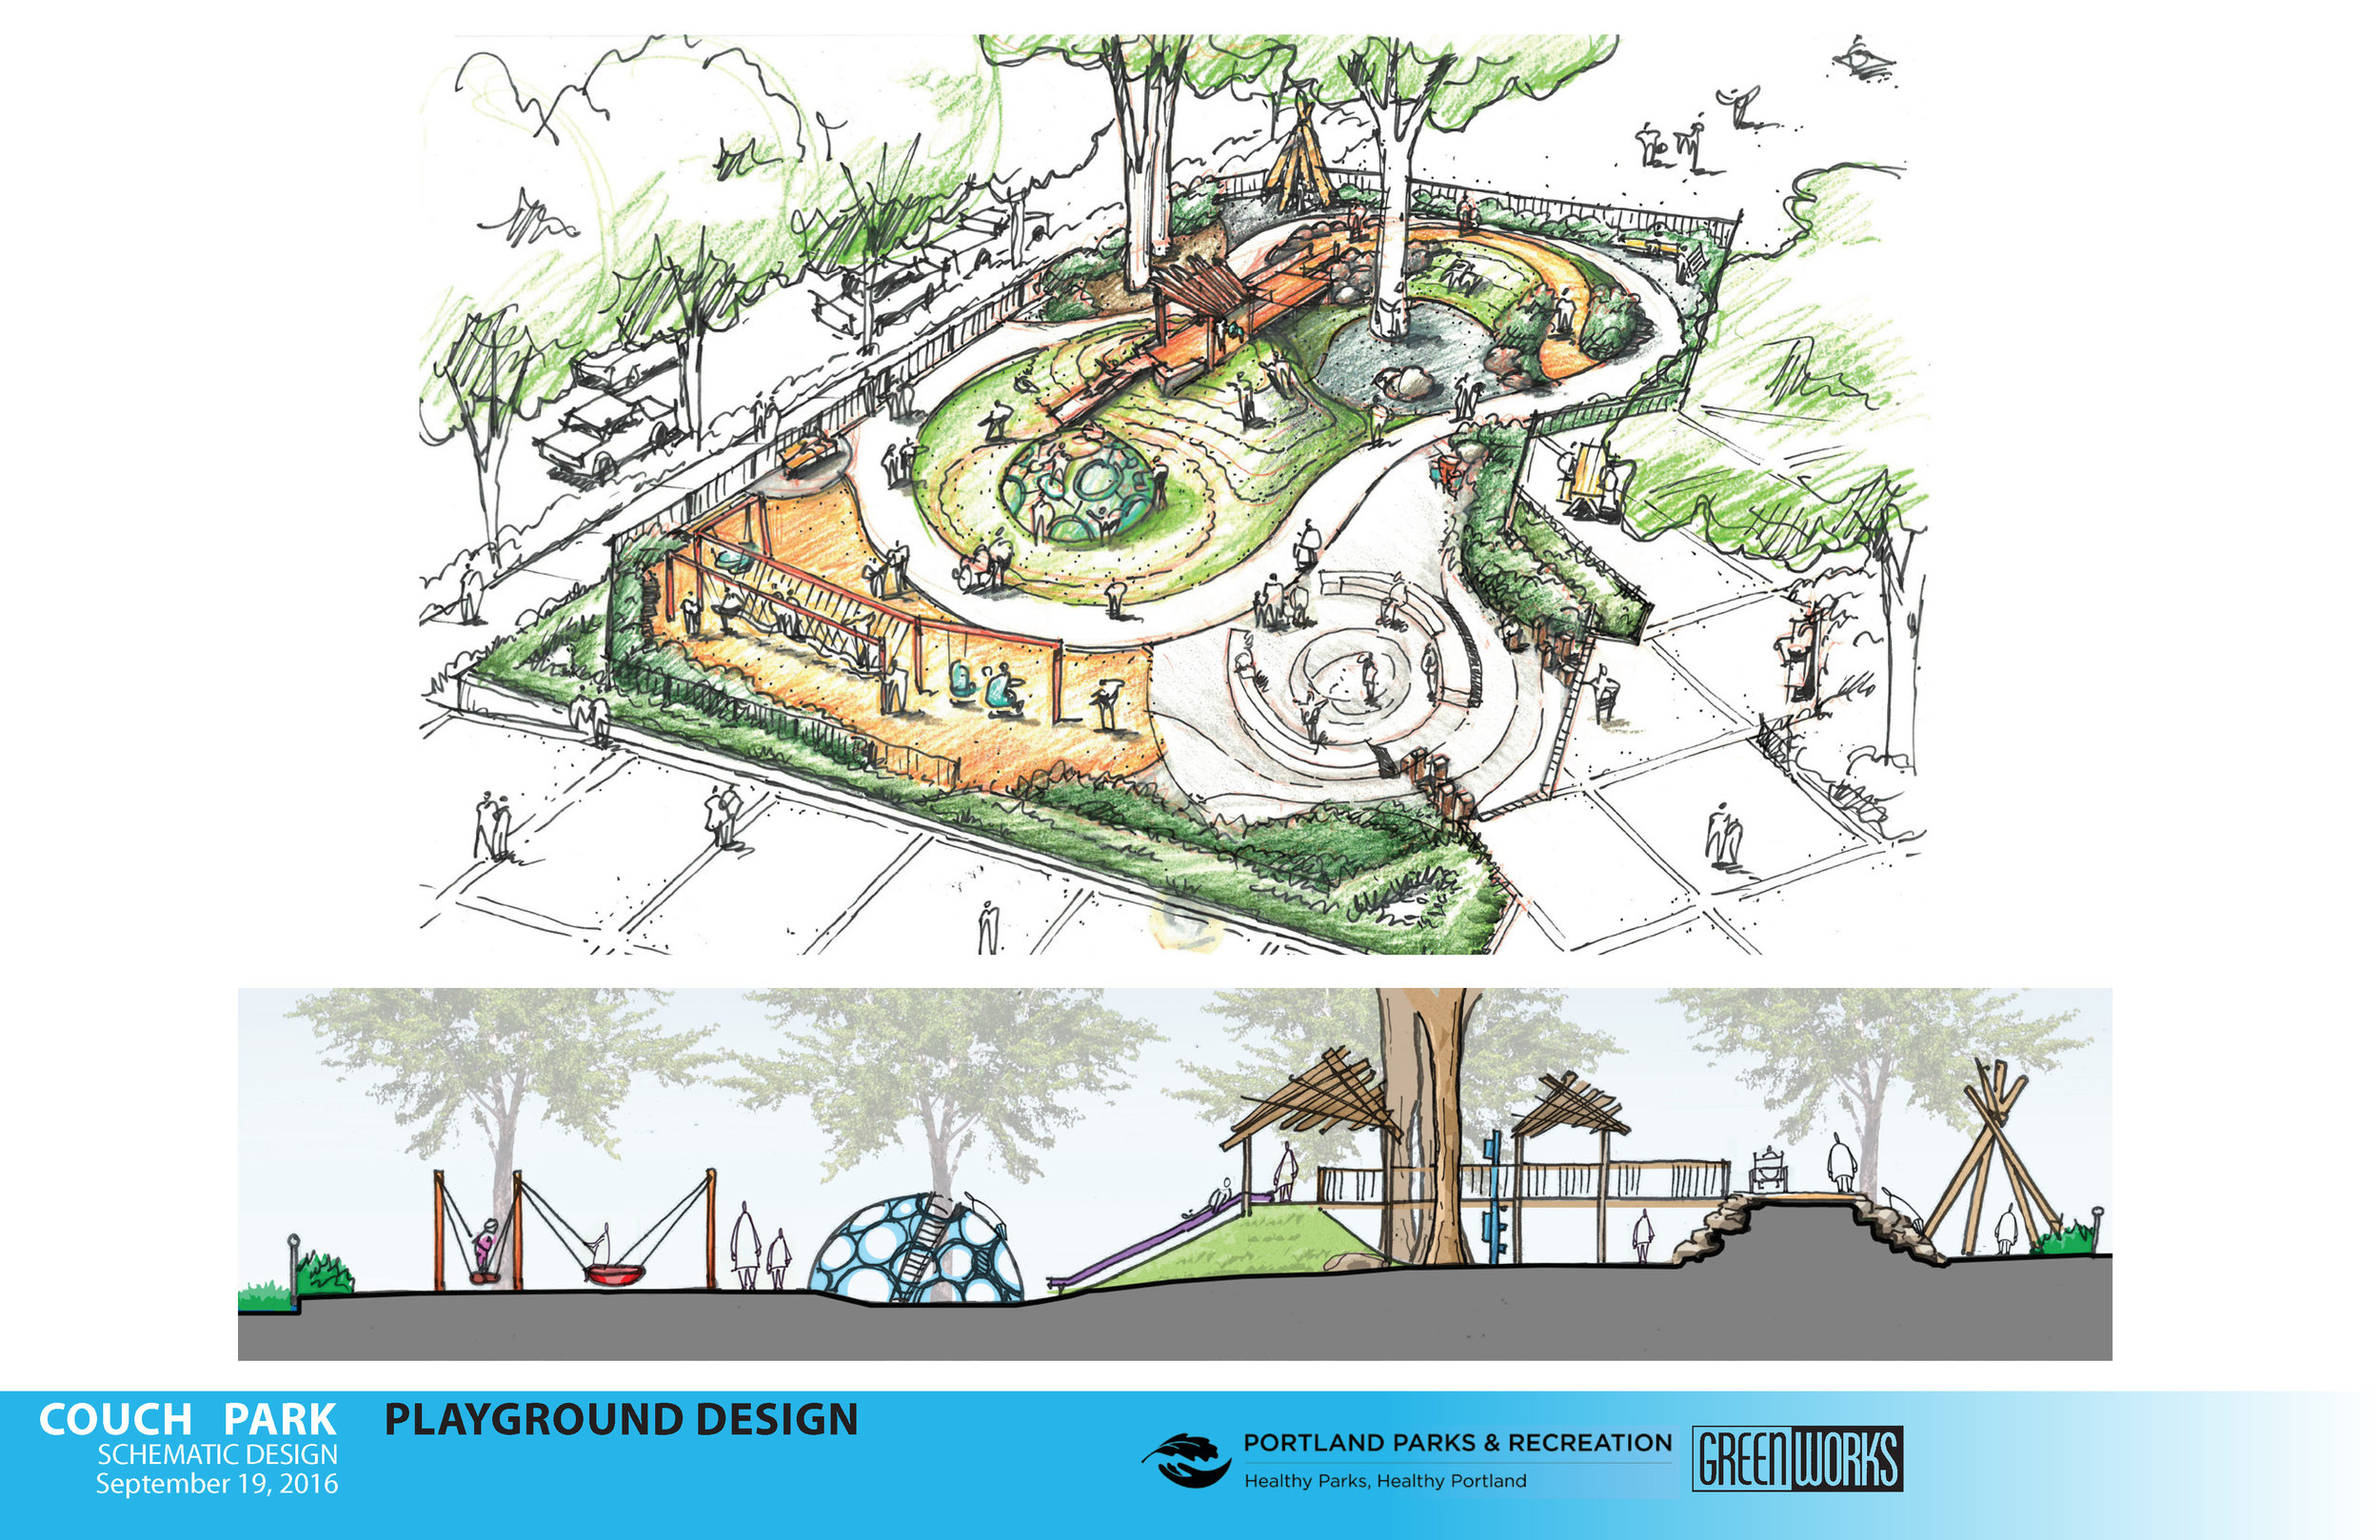 Couch Park Design Sketch Cross-section and Birdseye Views